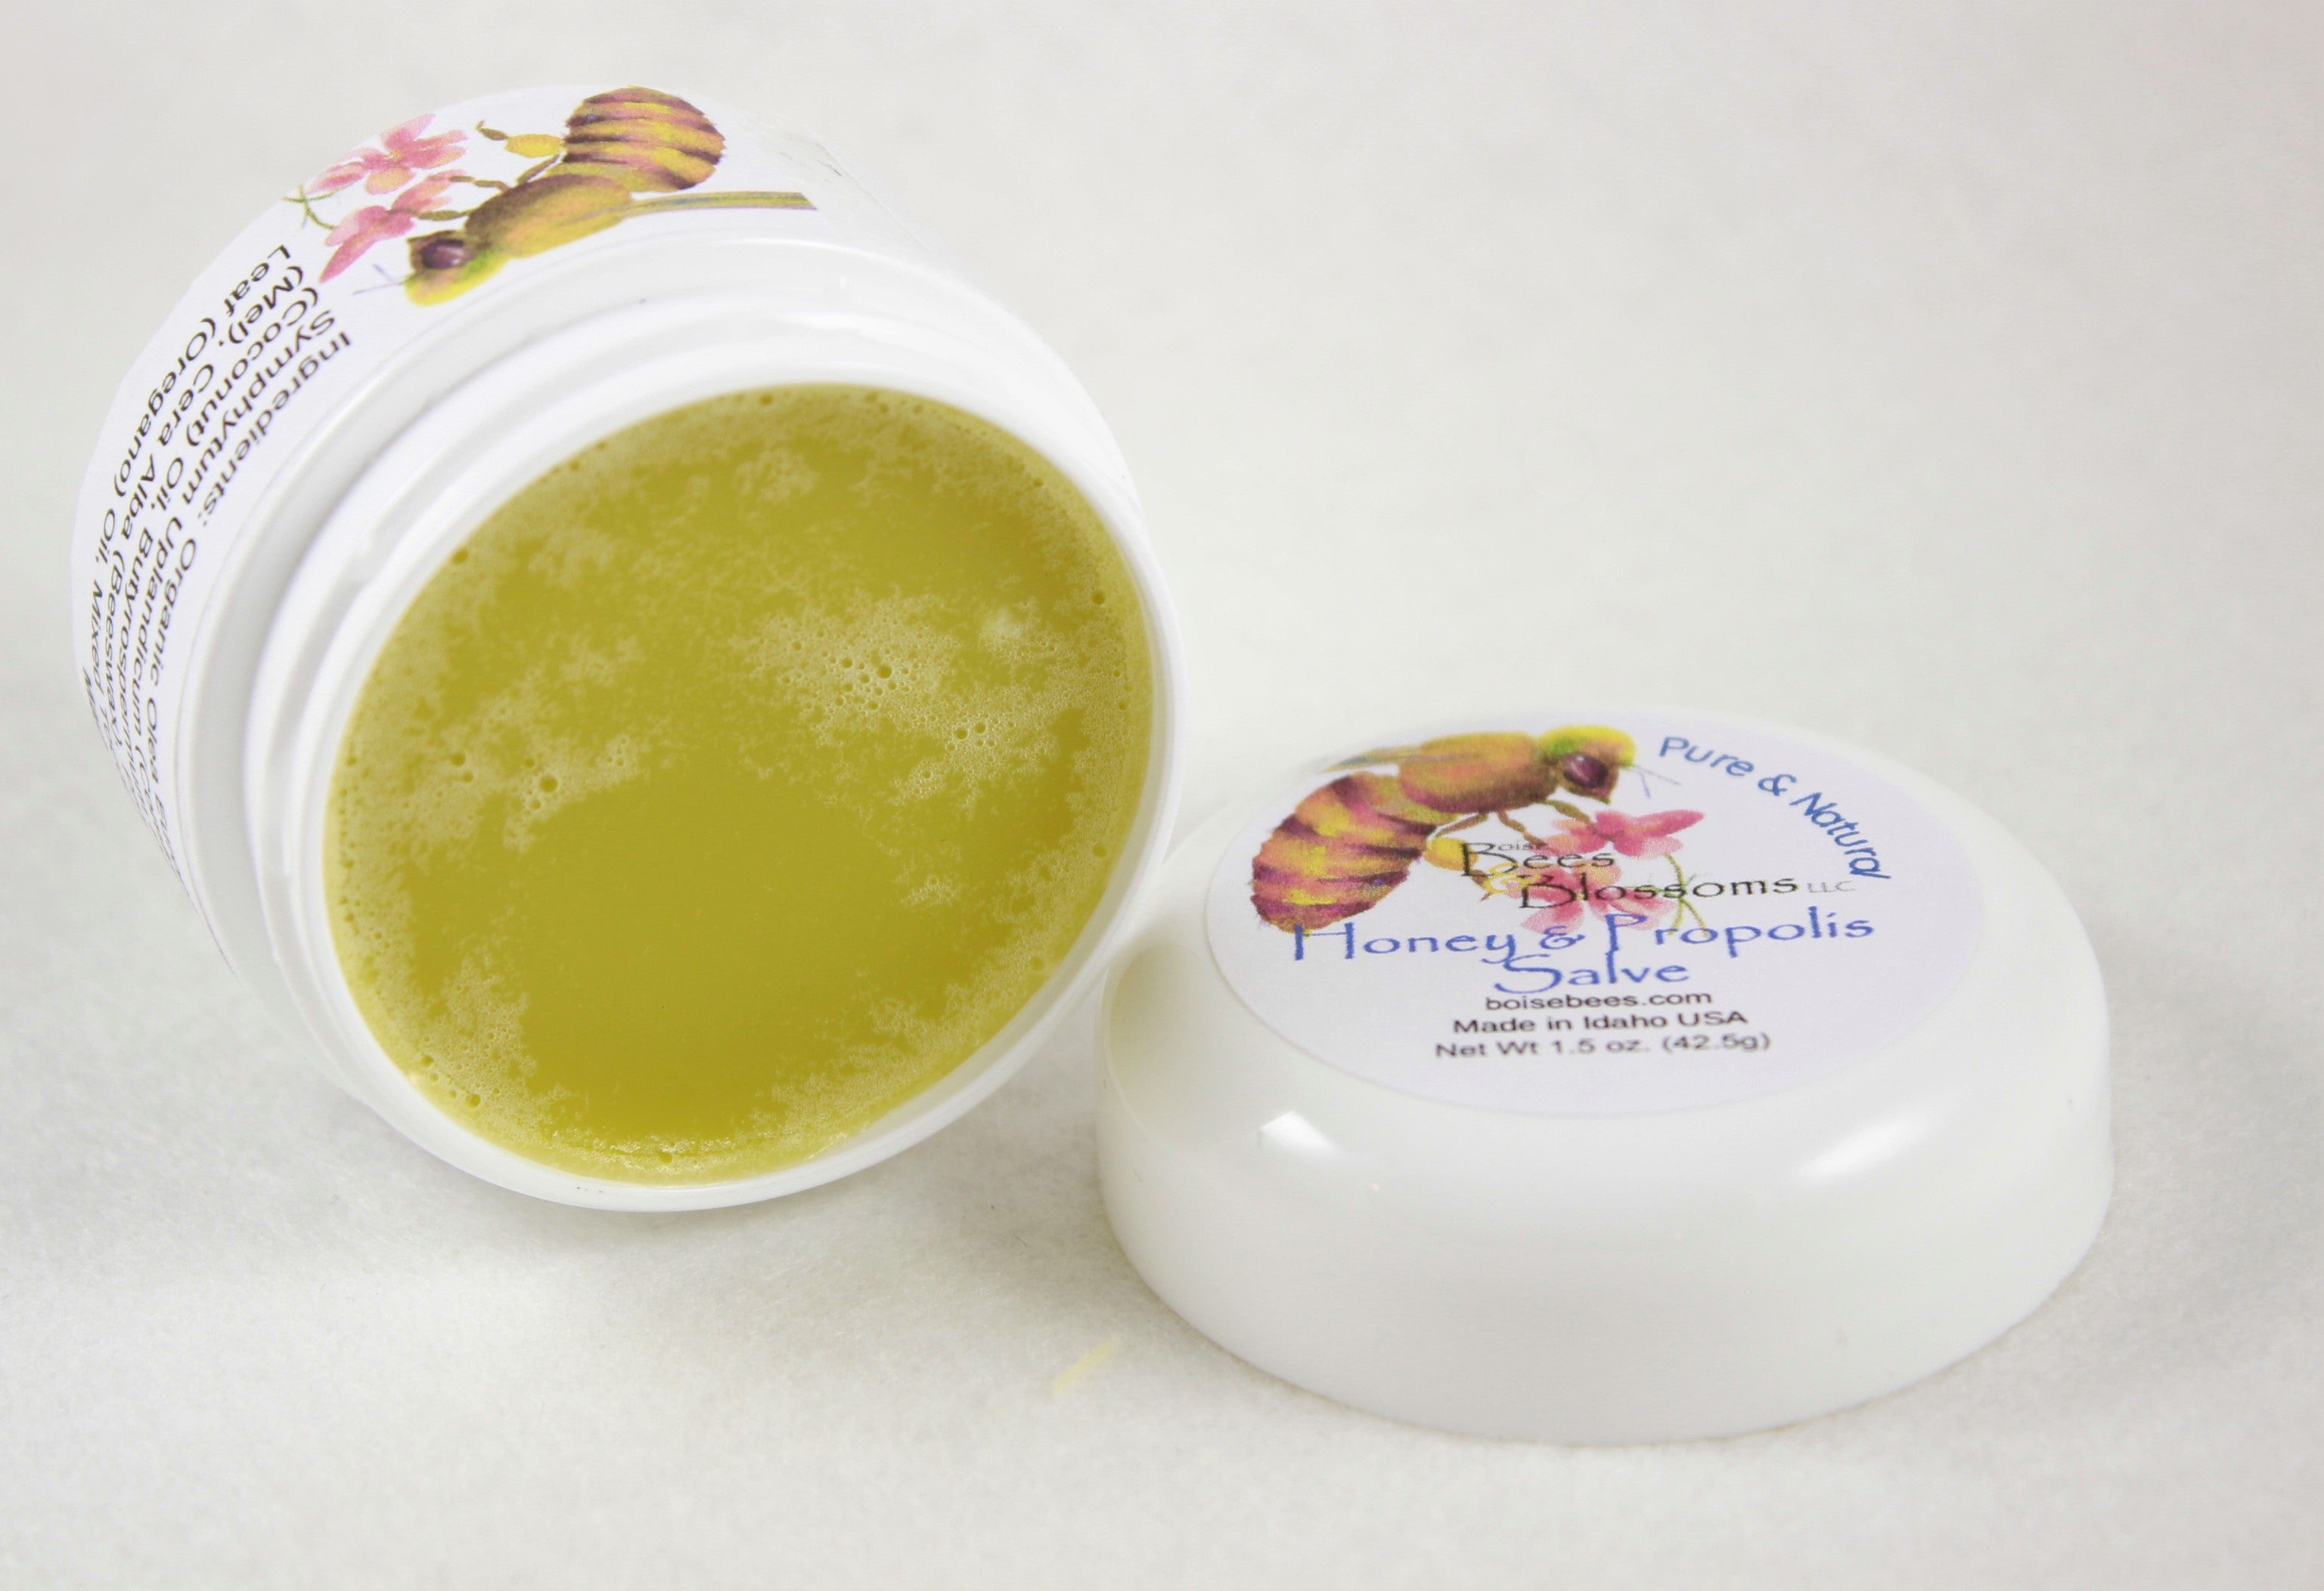 Honey & Propolis Salve